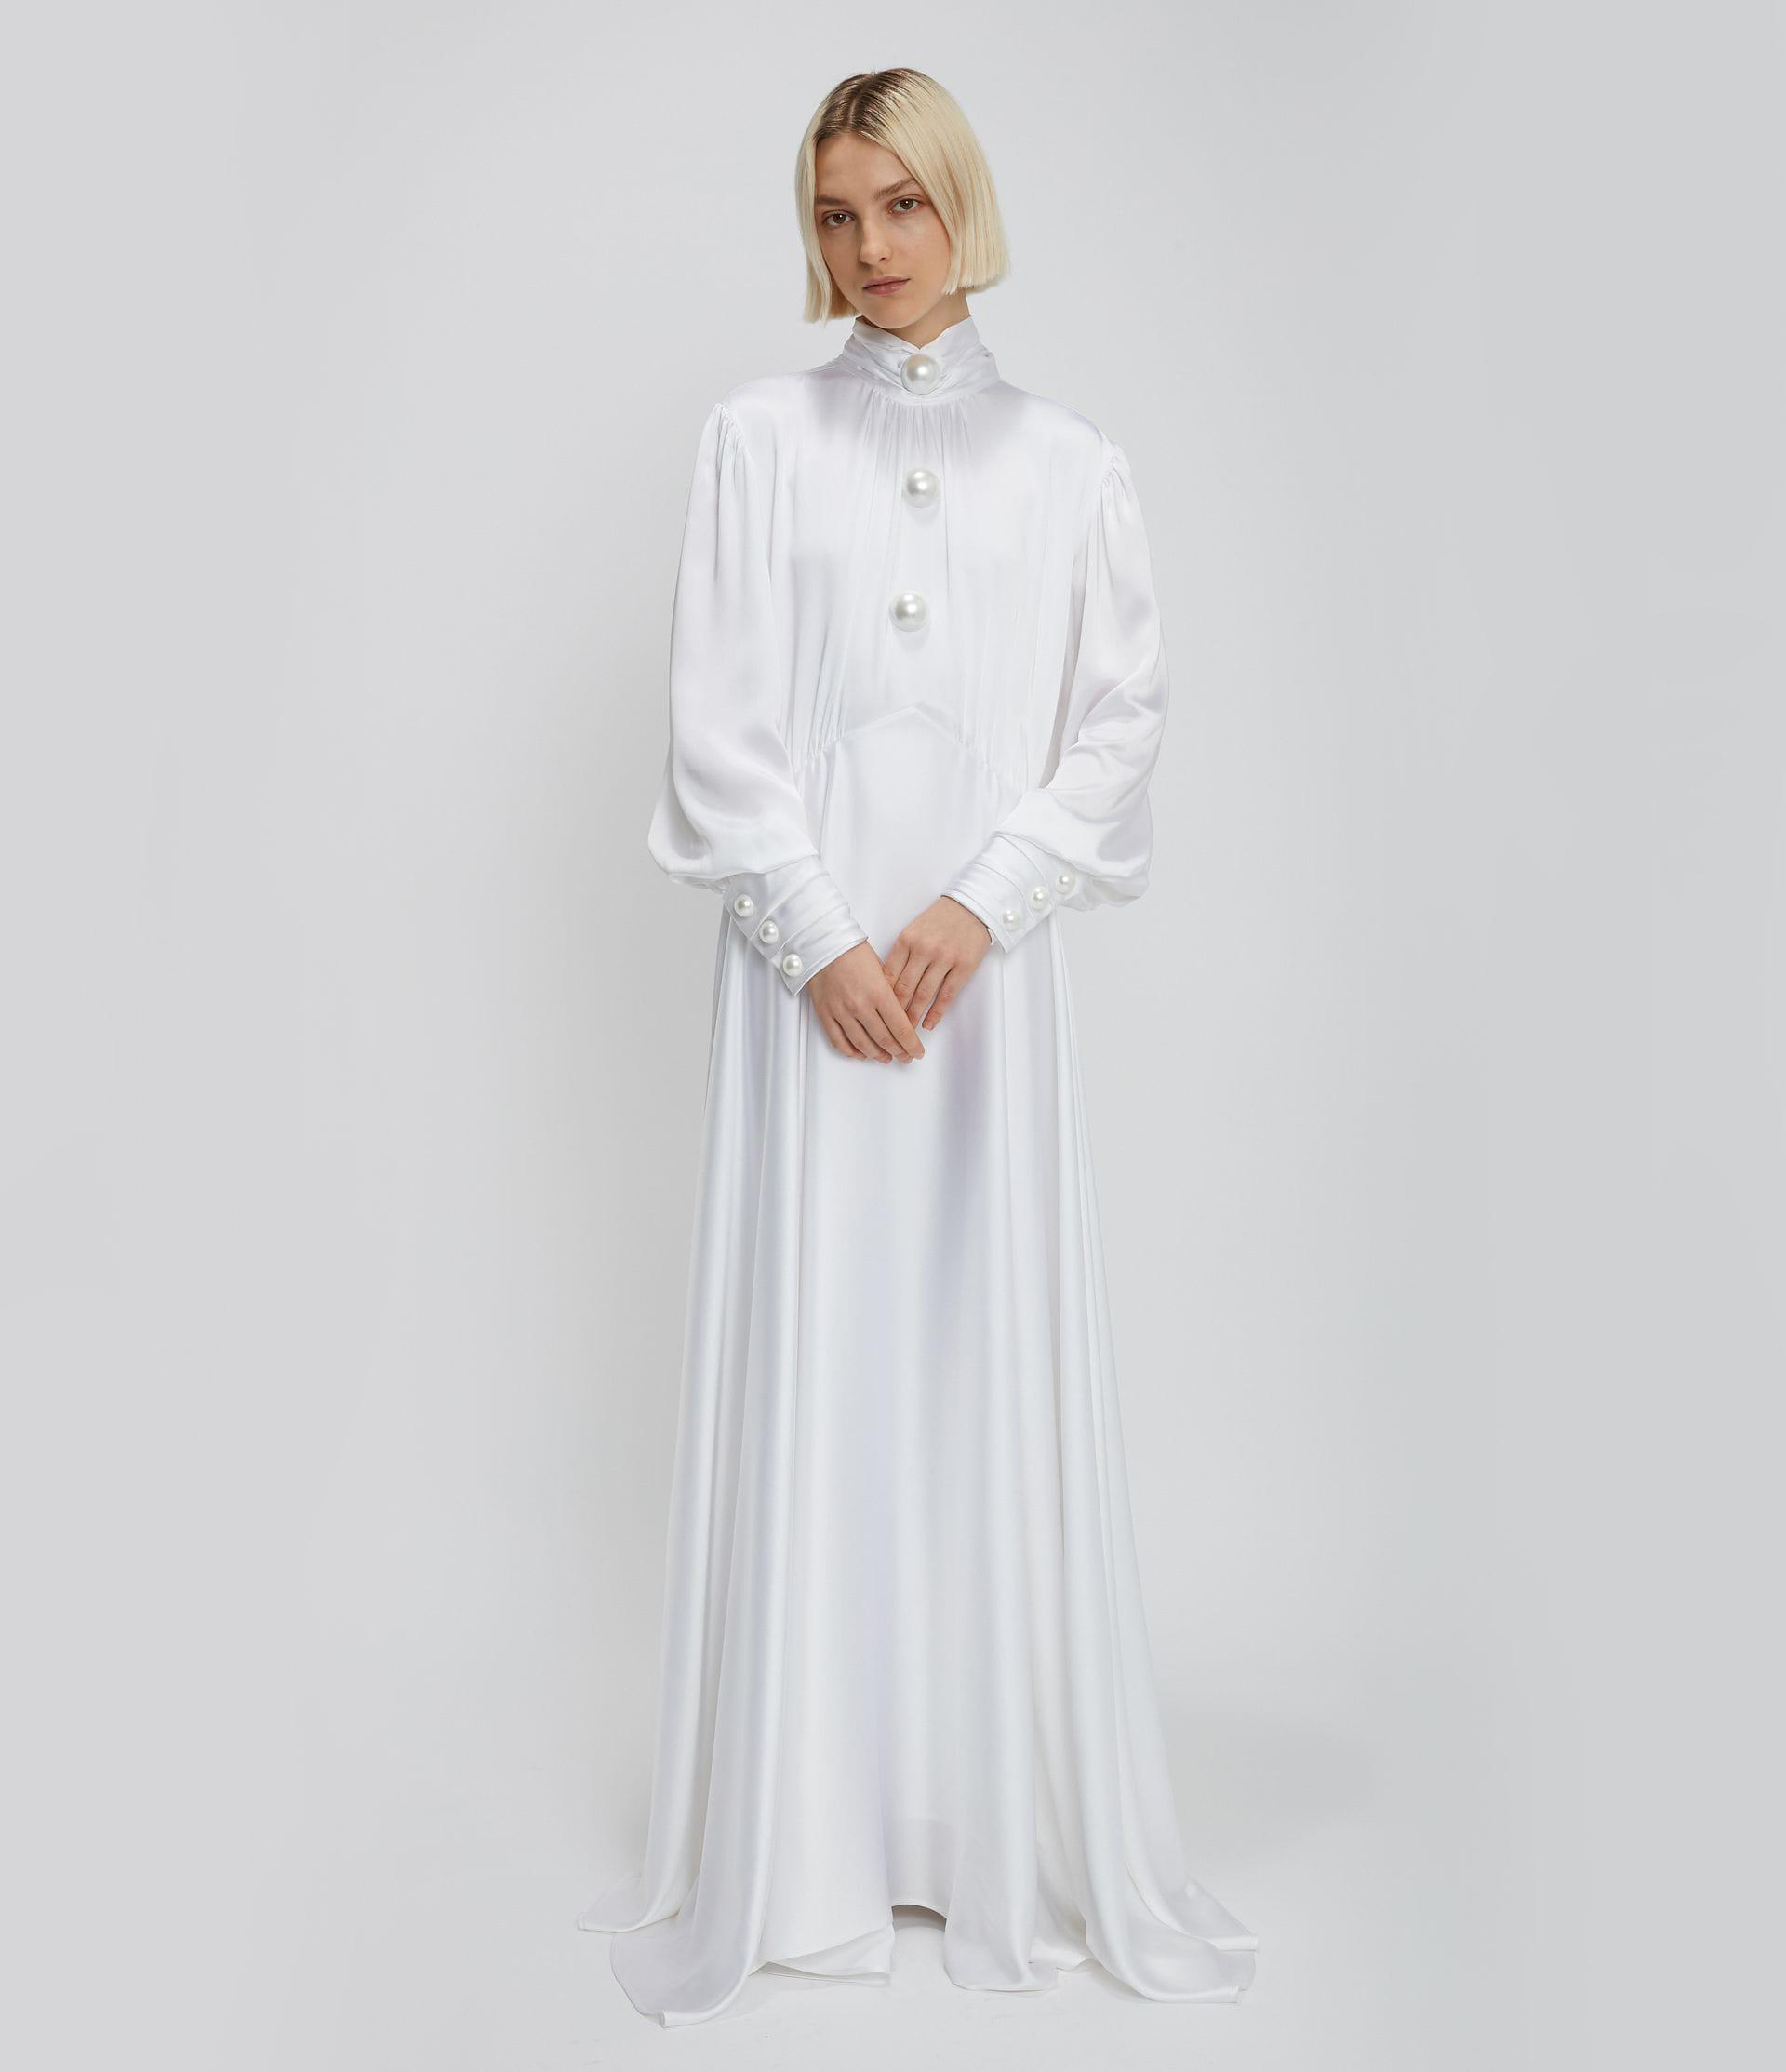 Christopher Kane Bridal: Pearl Dome Satin Gown